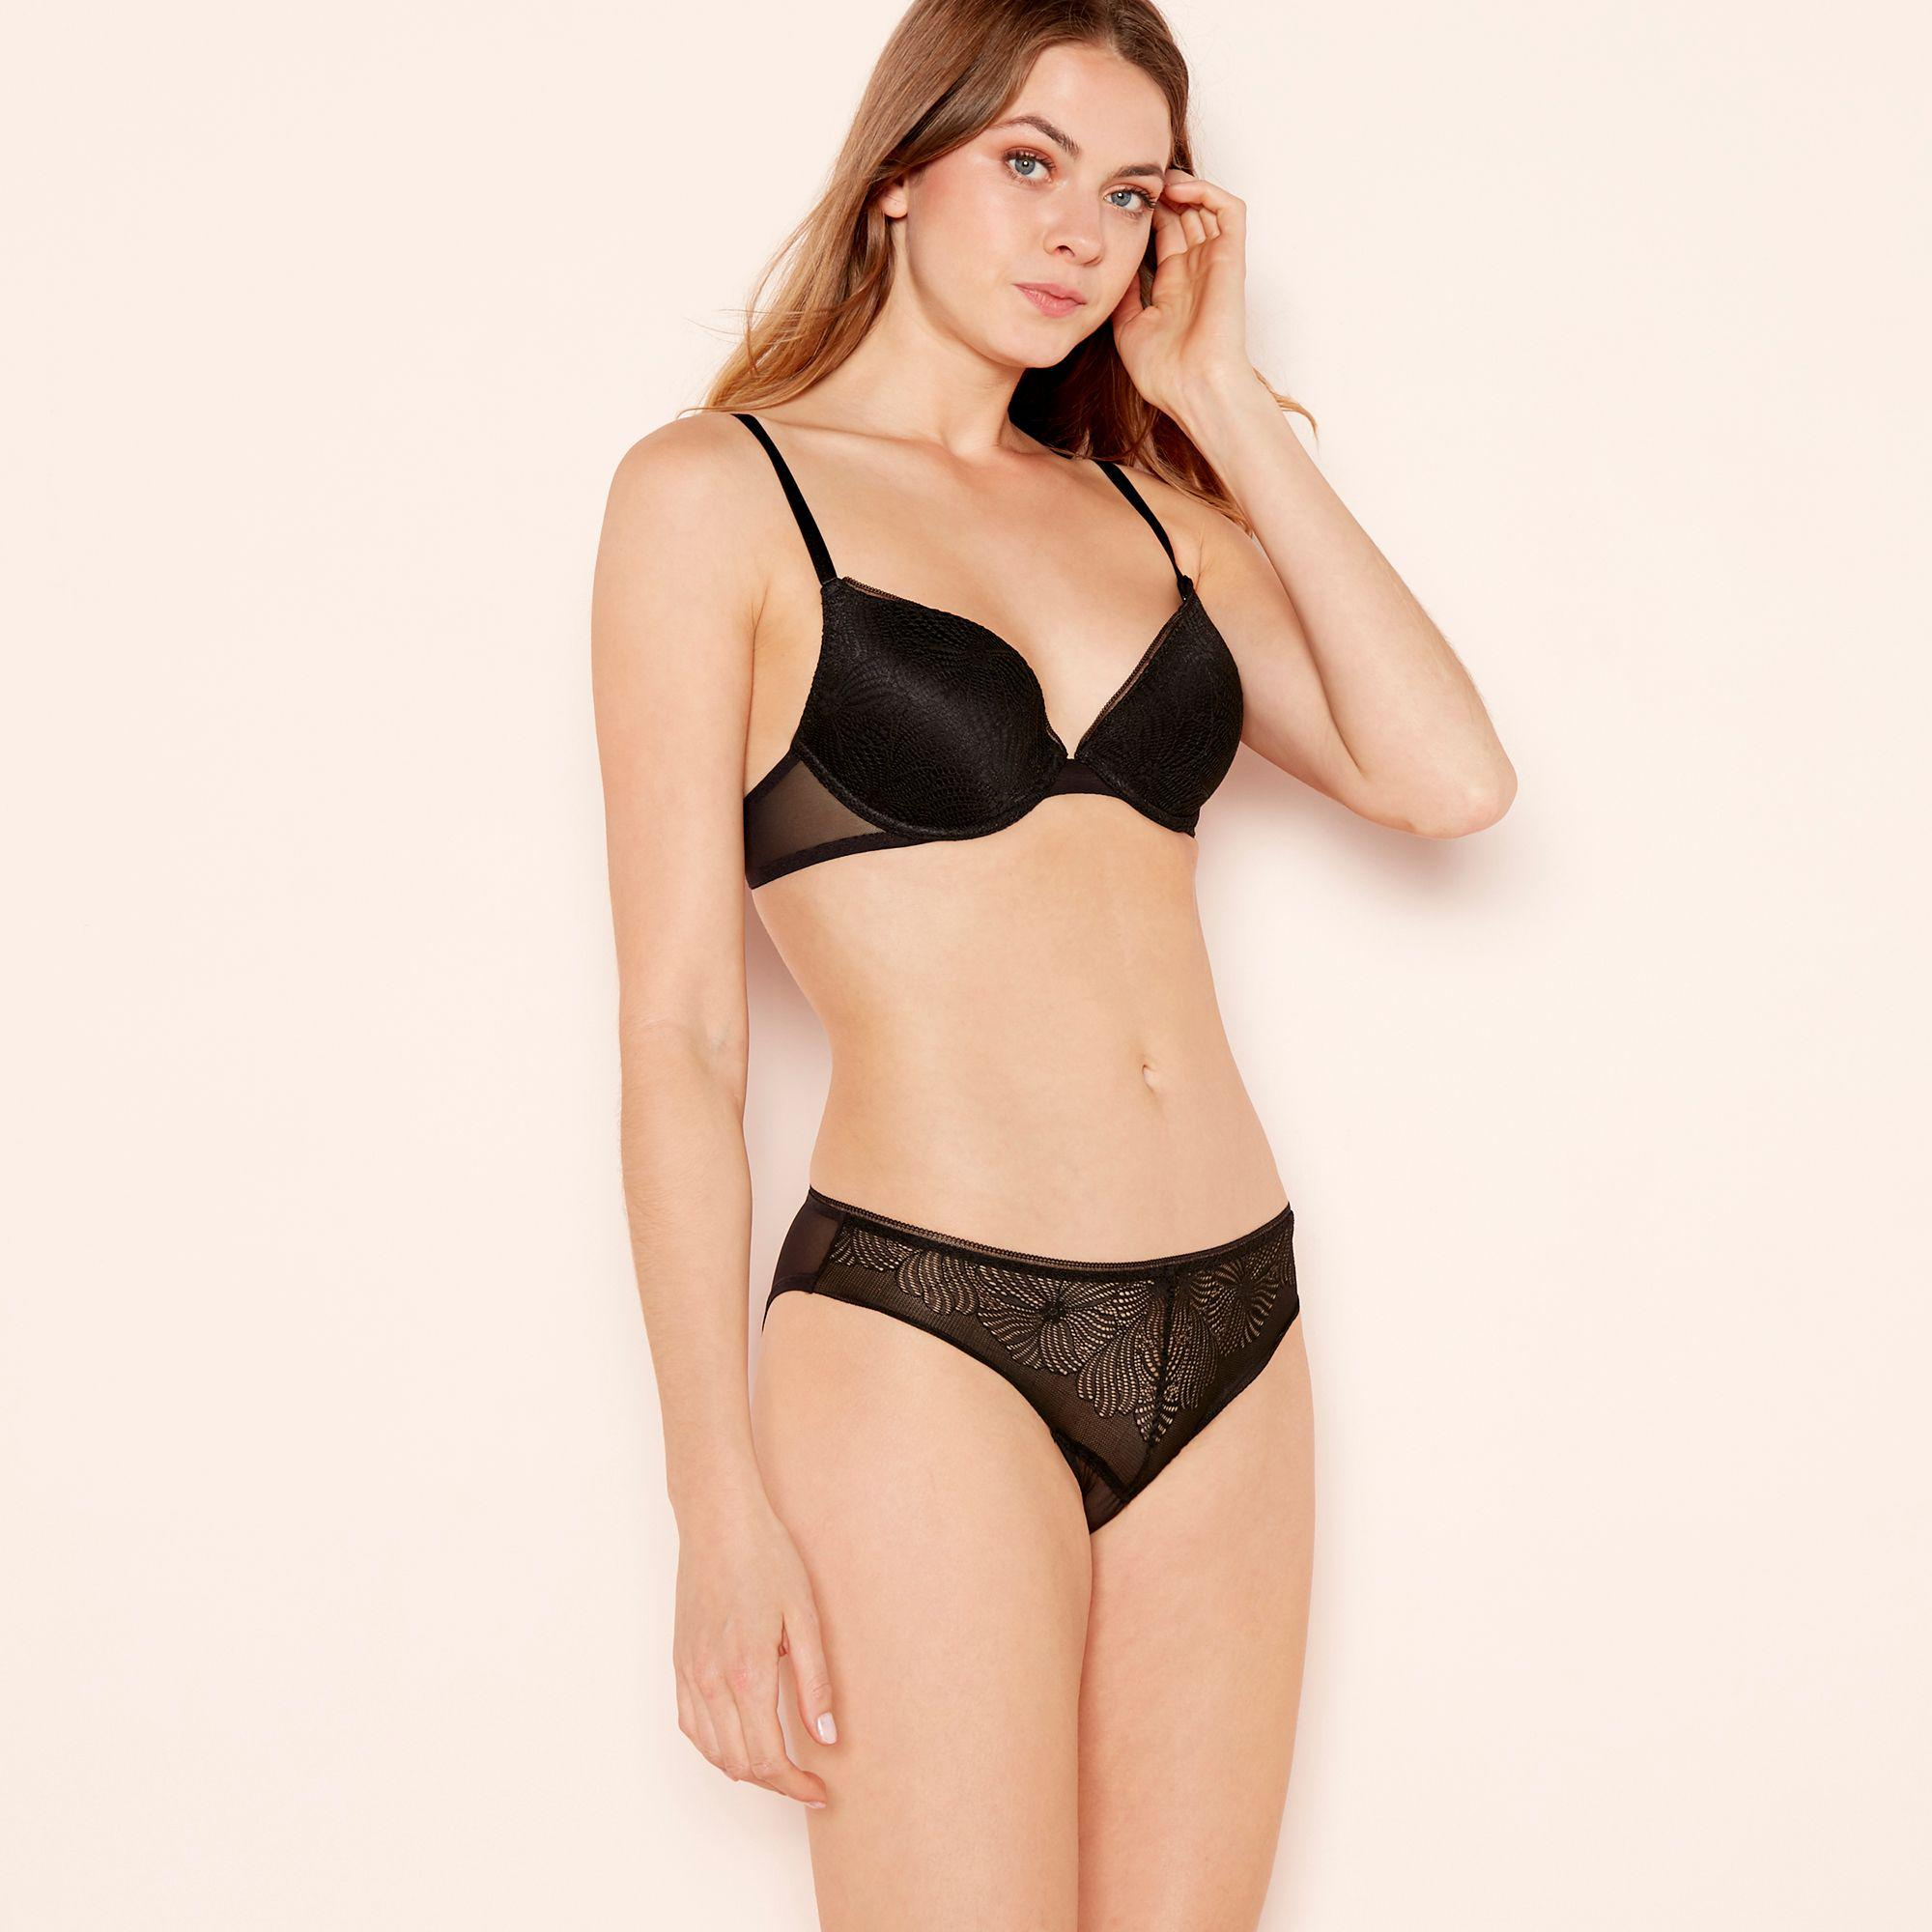 f1ecad04793d5 Wonderbra Black Embroidered Lace 'fabulous Feel' Underwired Padded T ...